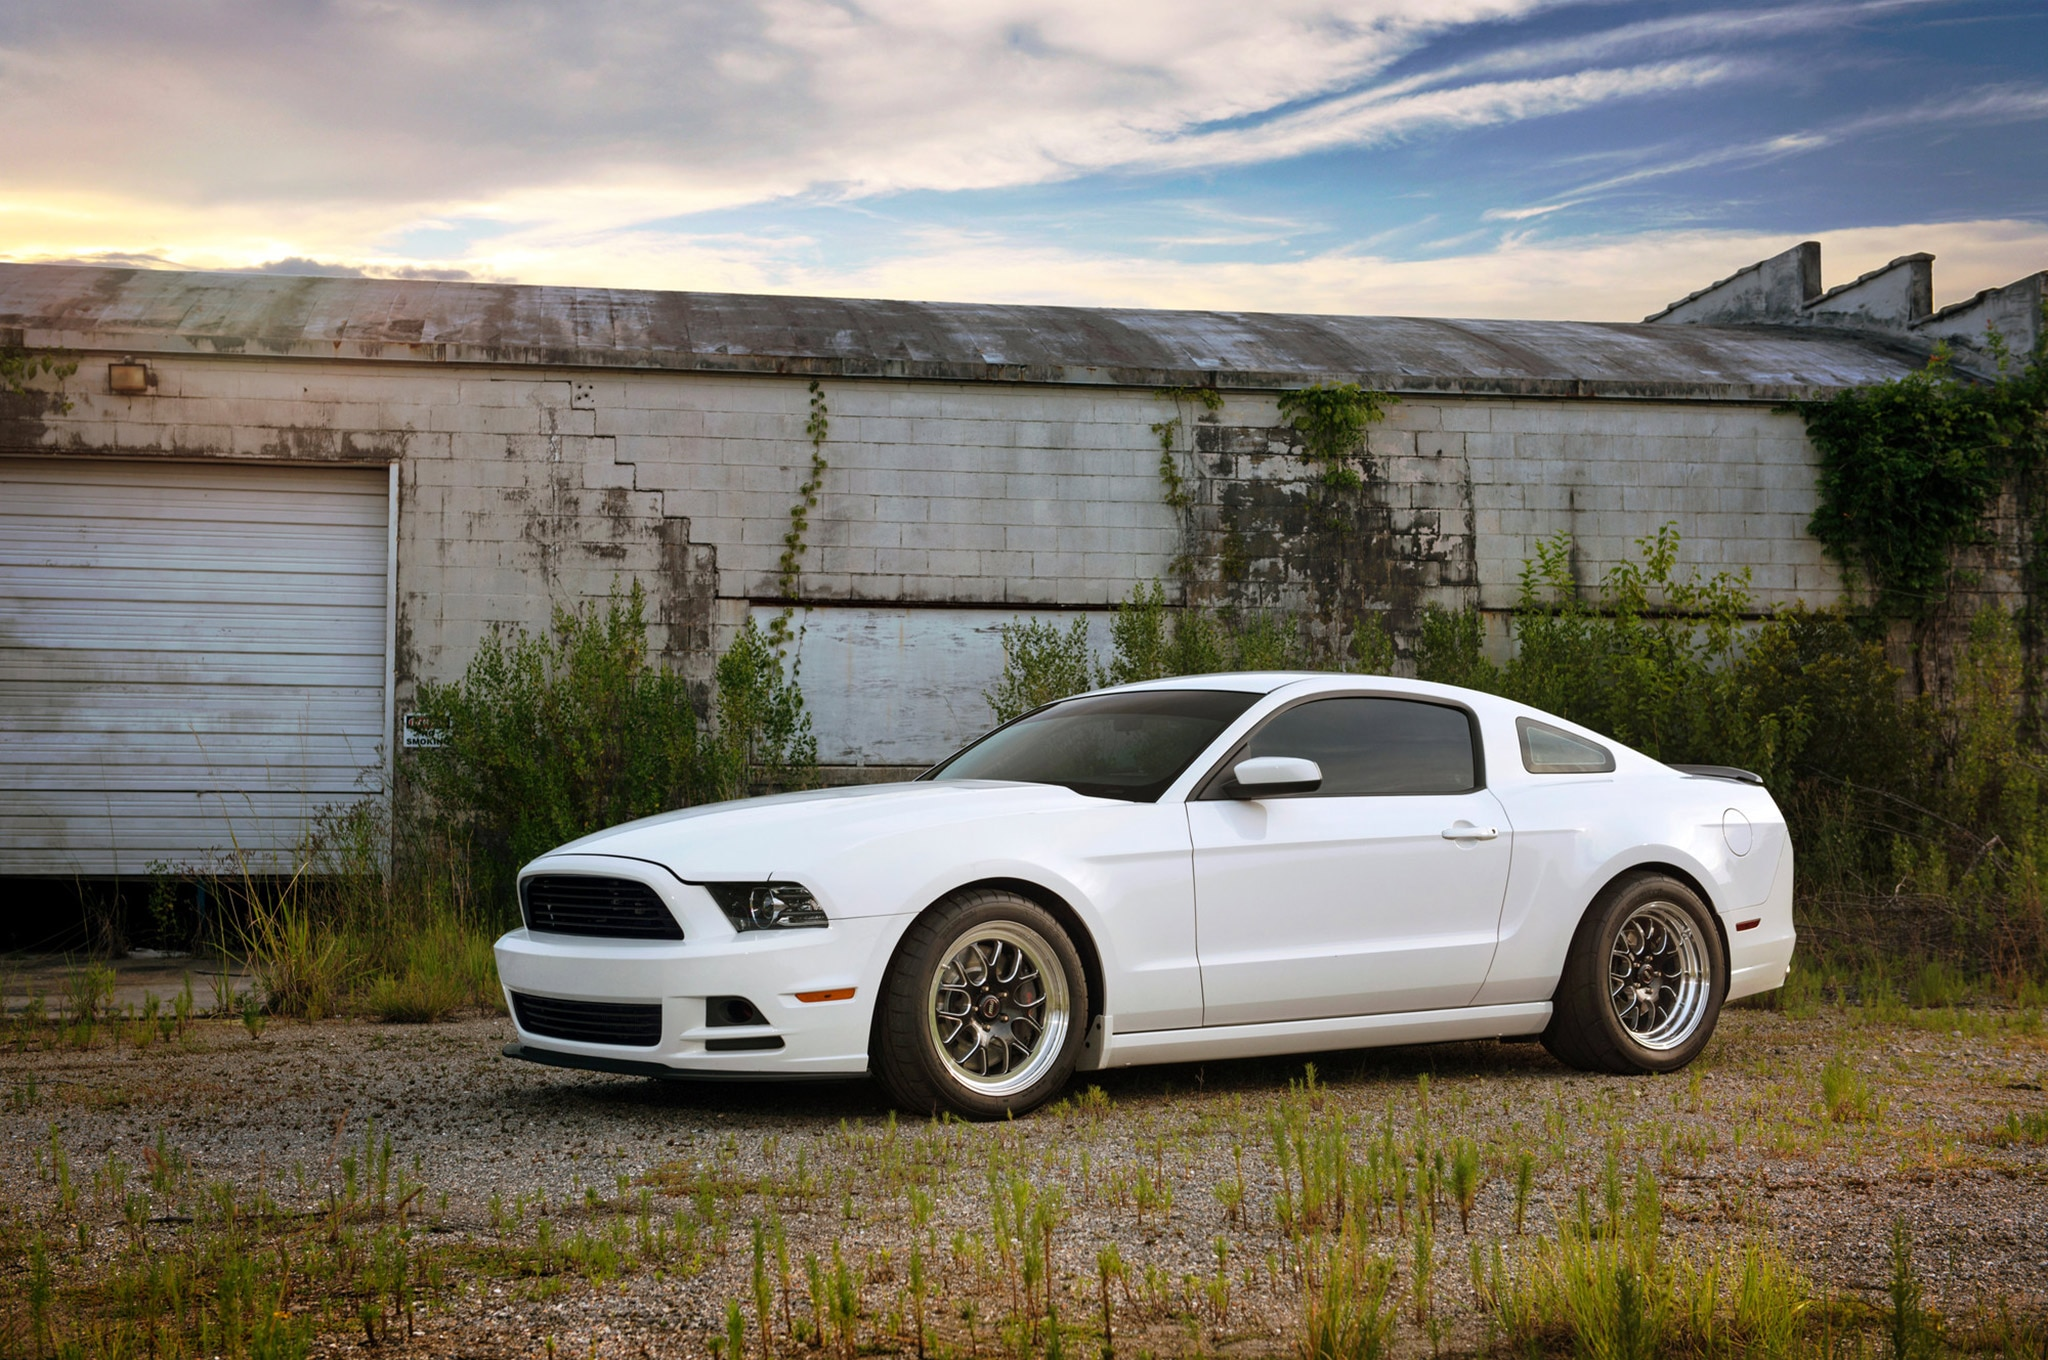 big bad boss the 2013 ford mustang boss 302 with 1 145 hp. Black Bedroom Furniture Sets. Home Design Ideas